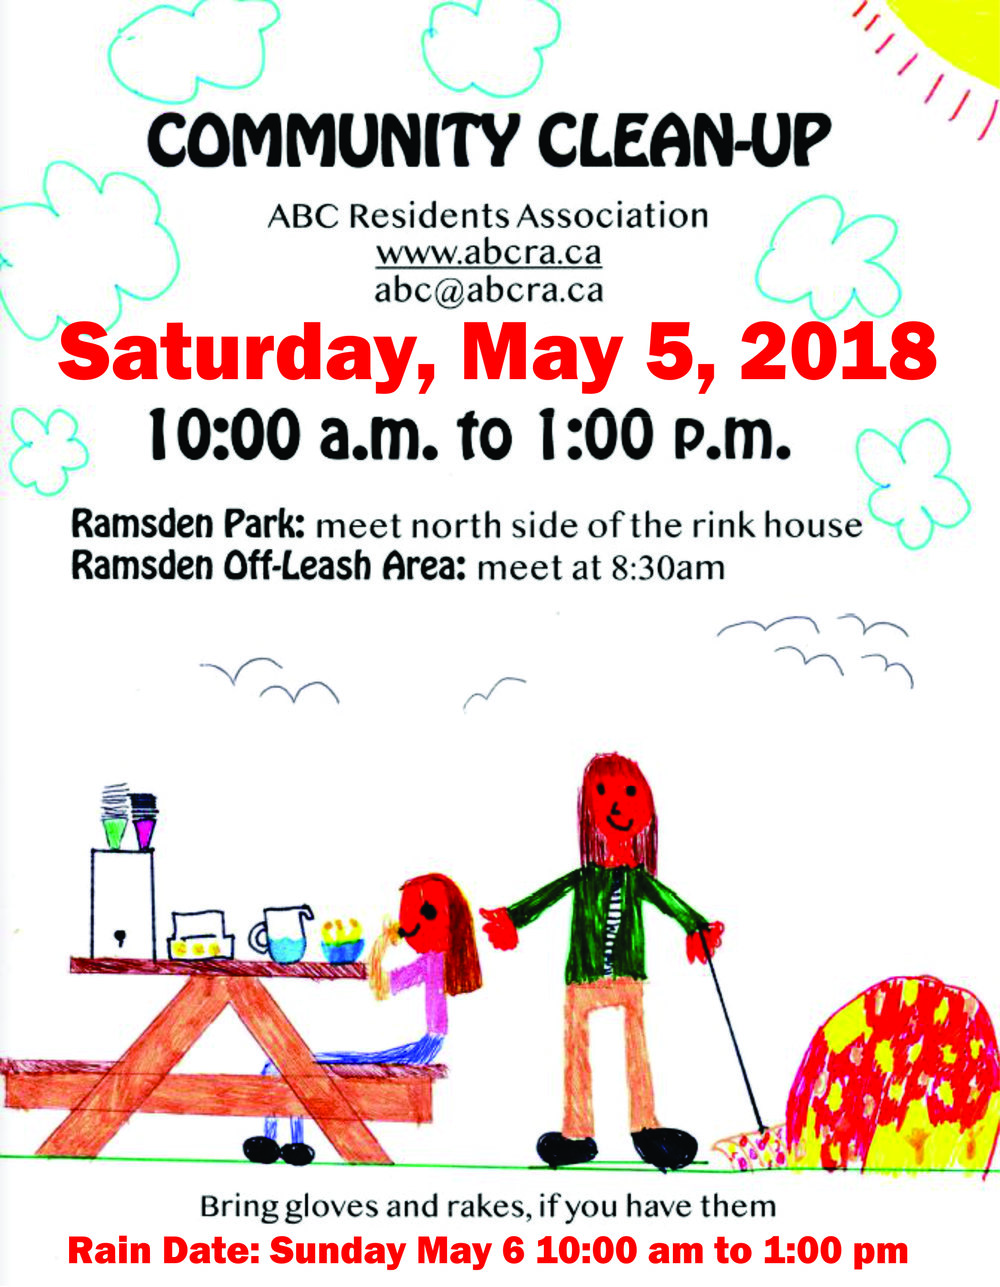 ABC spring clean up Simine may 5 2018.jpg